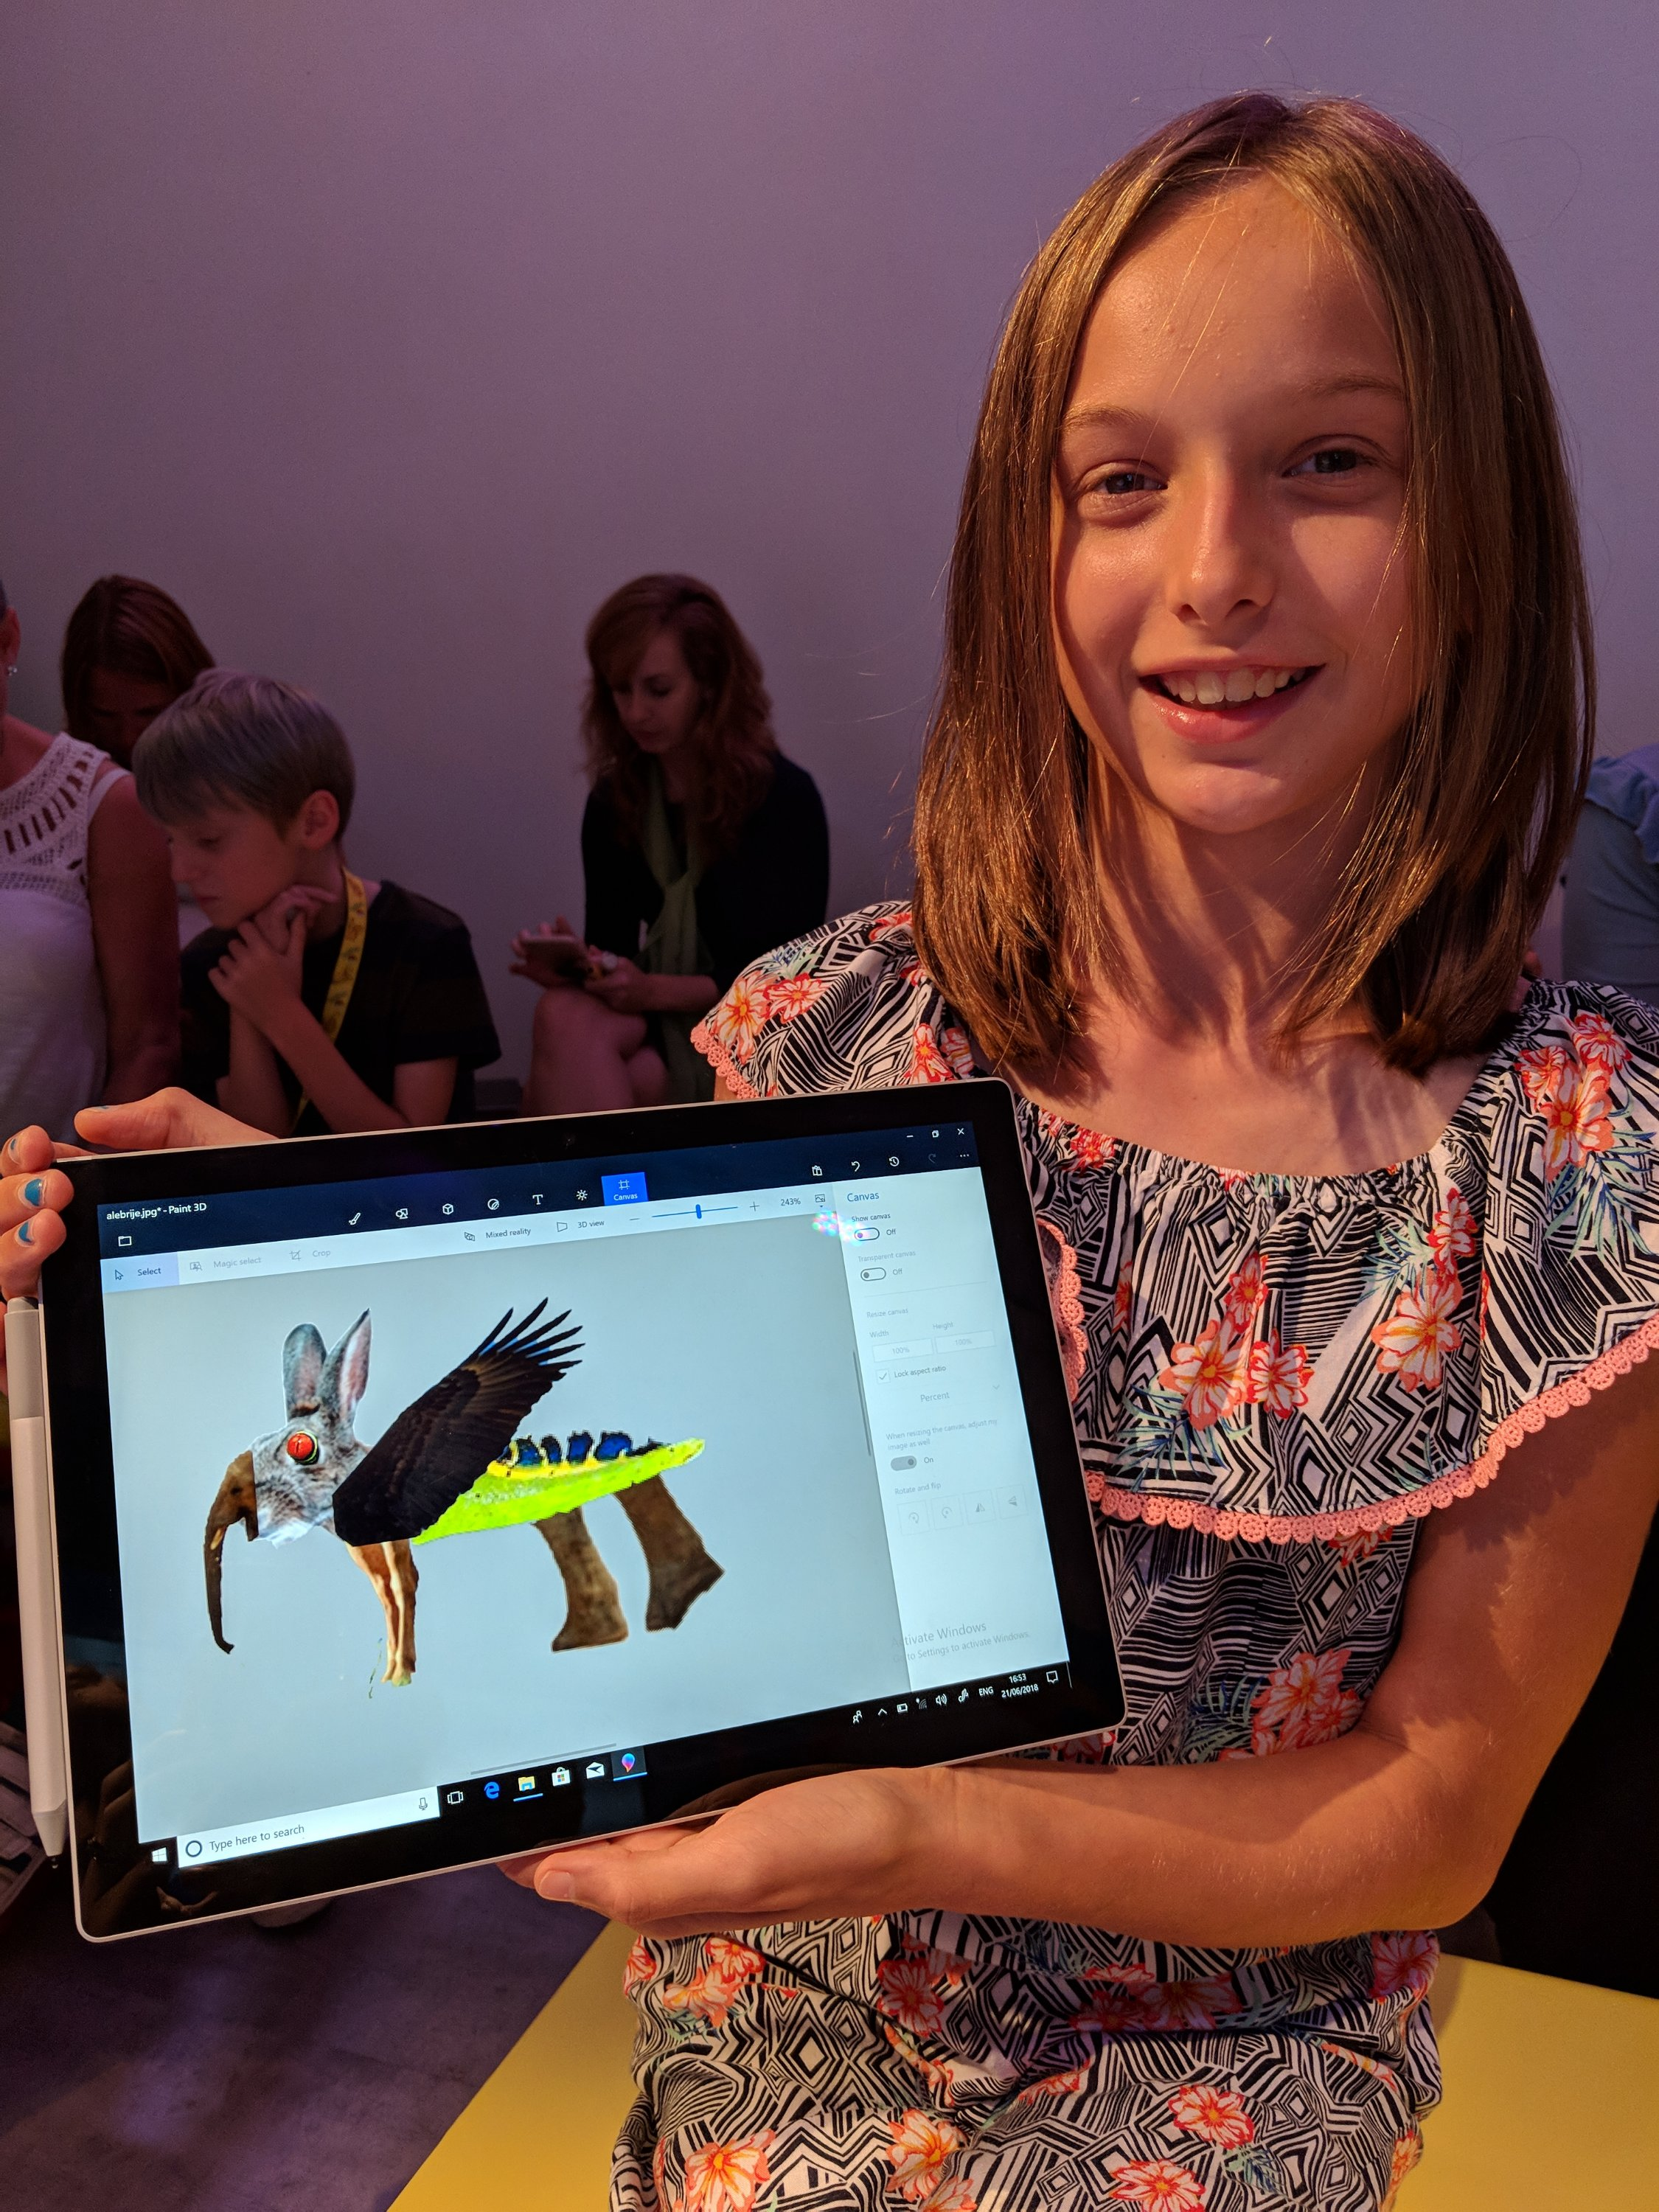 Art creation made with Paint 3D software on the new Microsoft Surface Go